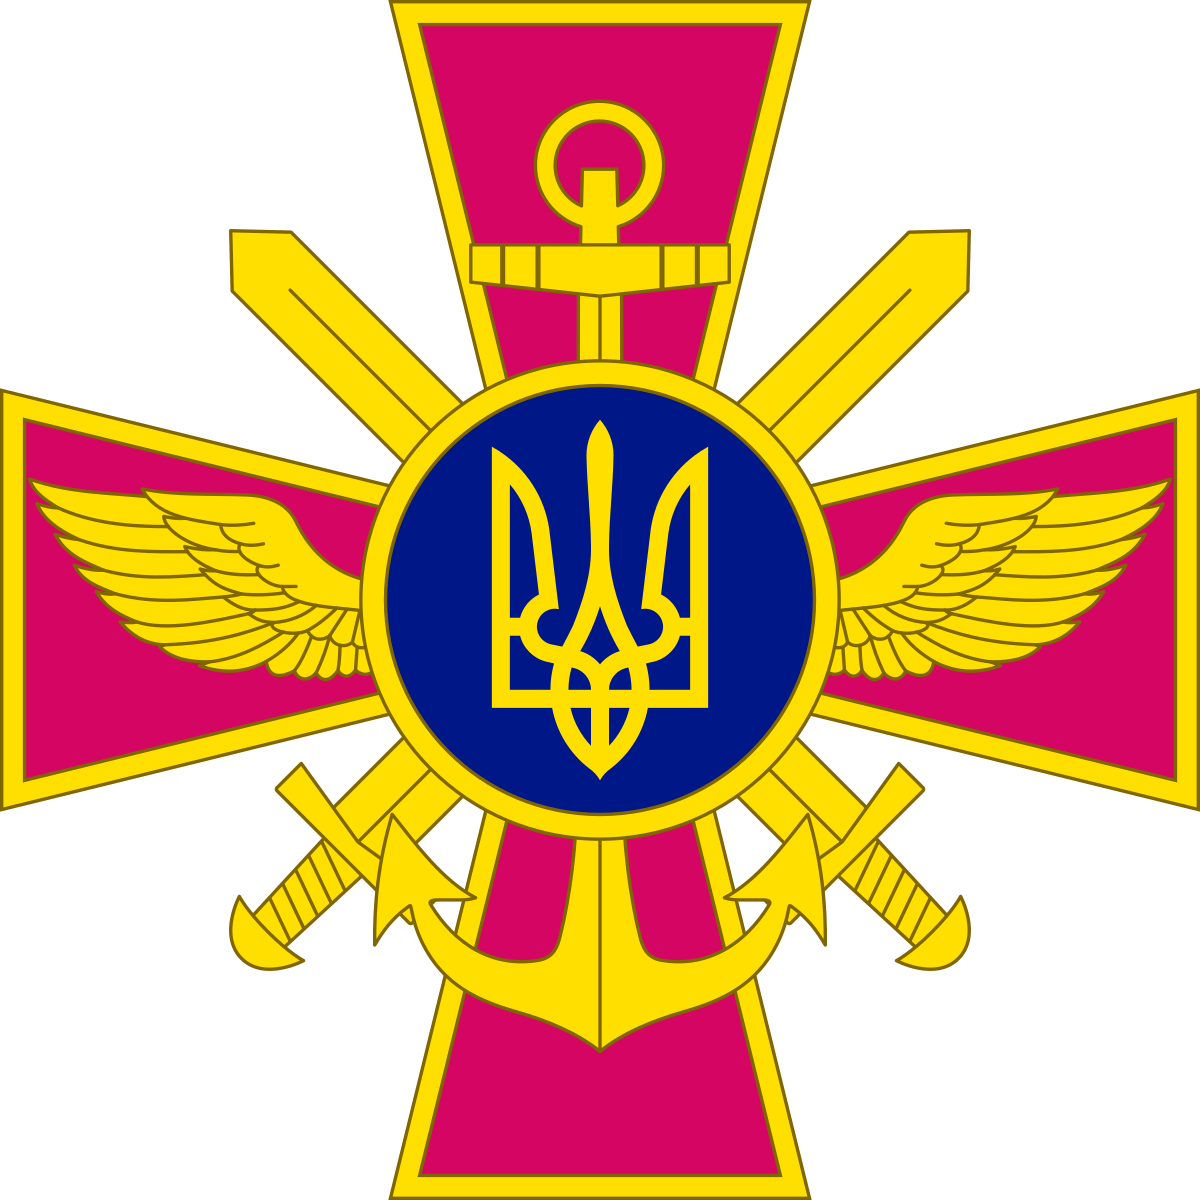 Invasion clipart armed force The Ukrainian Armed Wikipedia Forces